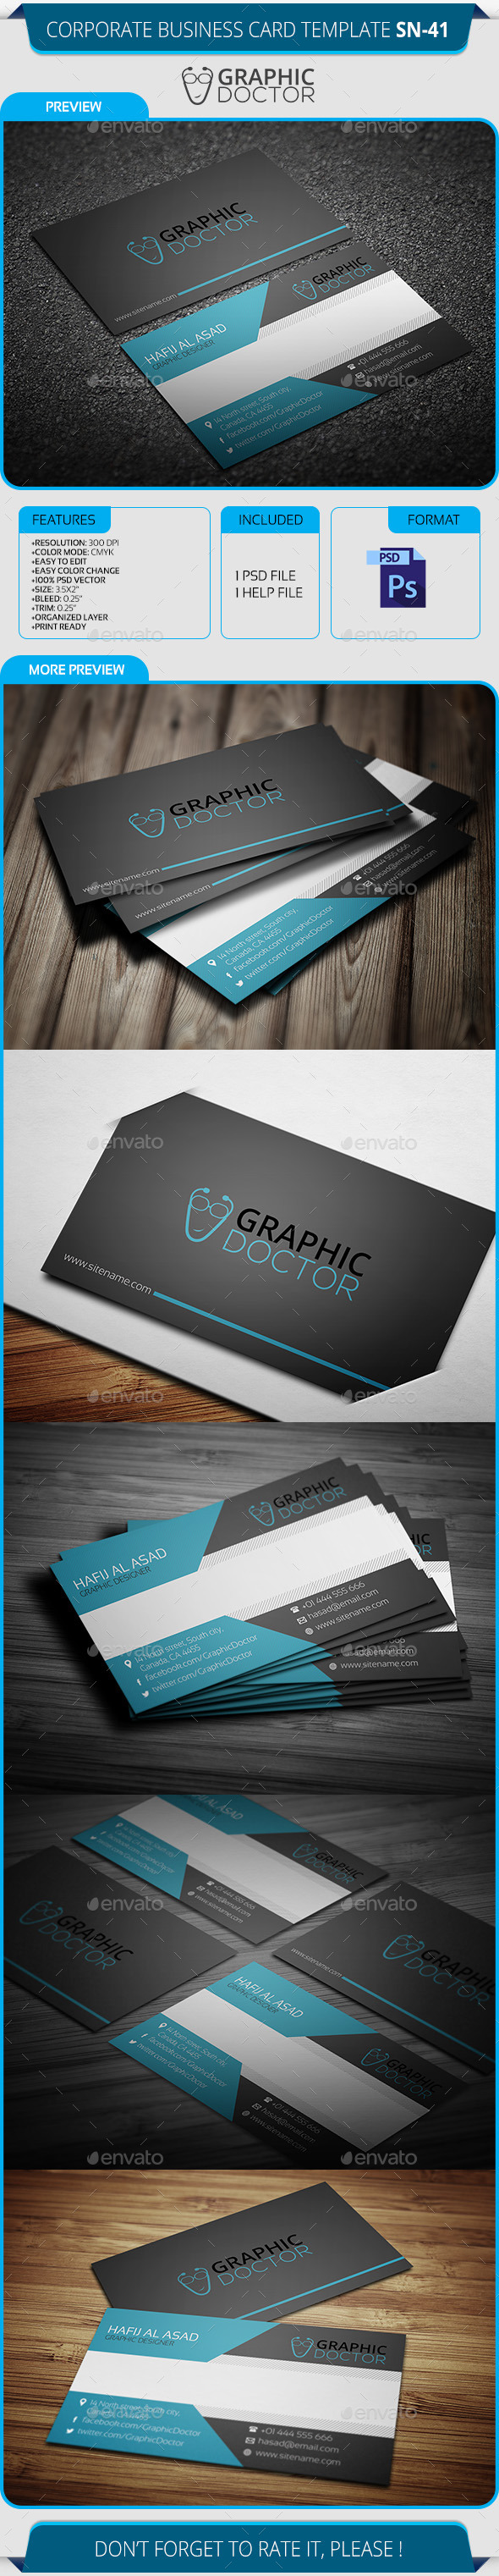 GraphicRiver Corporate Business Card Template SN-41 8804410